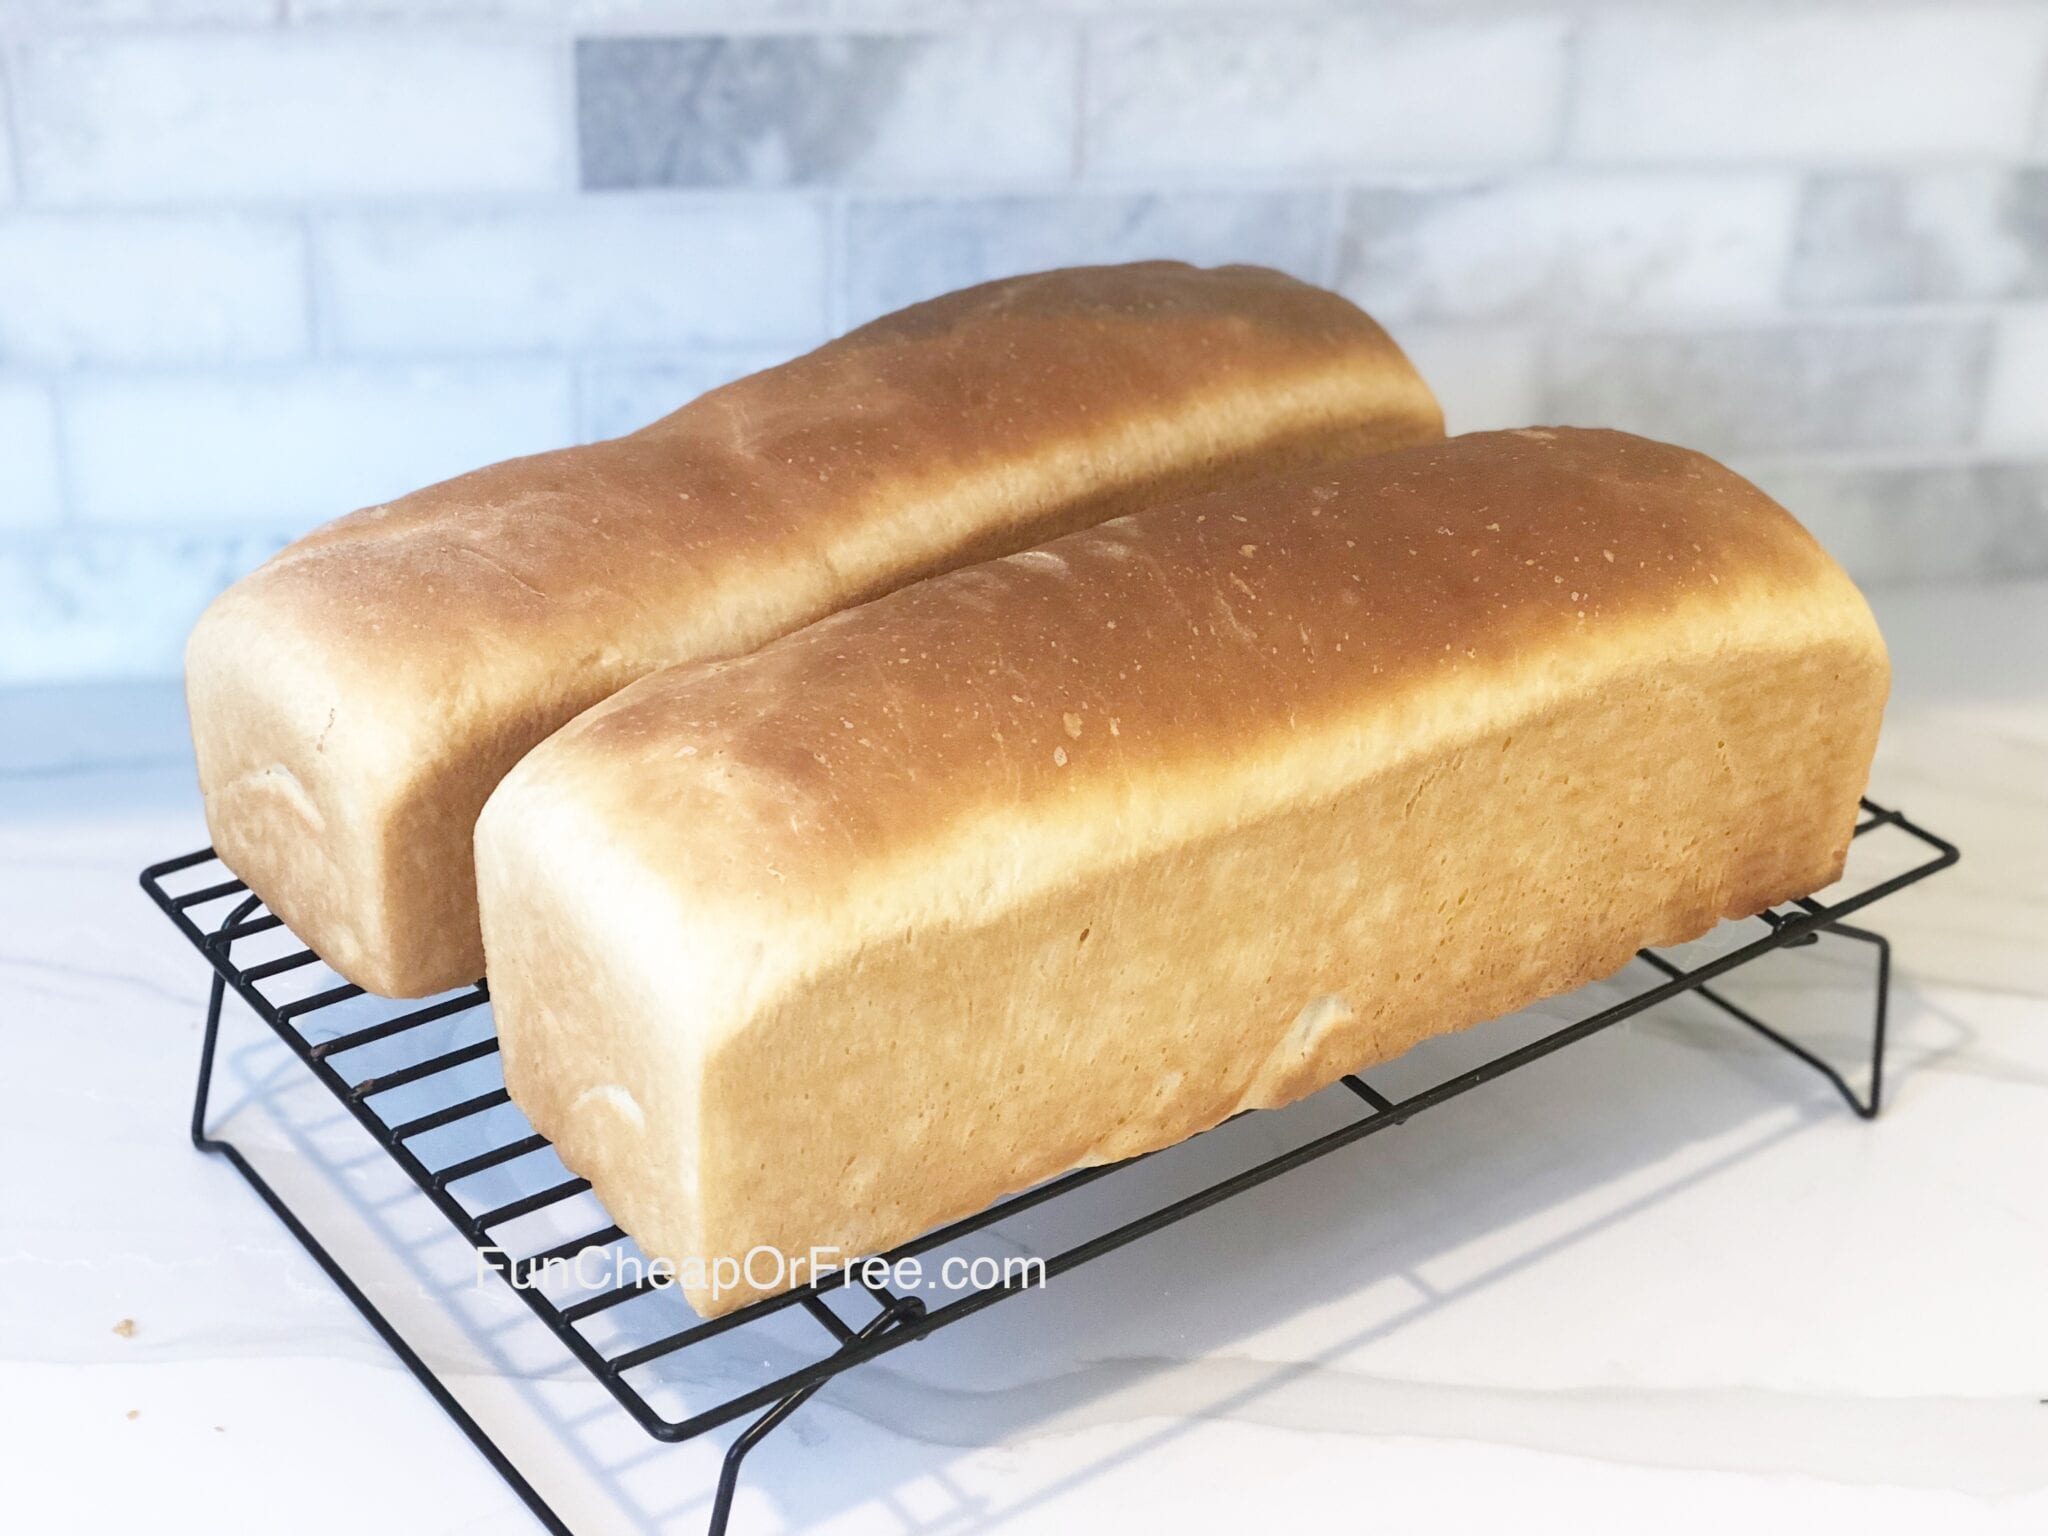 How to bake bread!! Easiest recipe EVER! Seriously, anyone can do this!